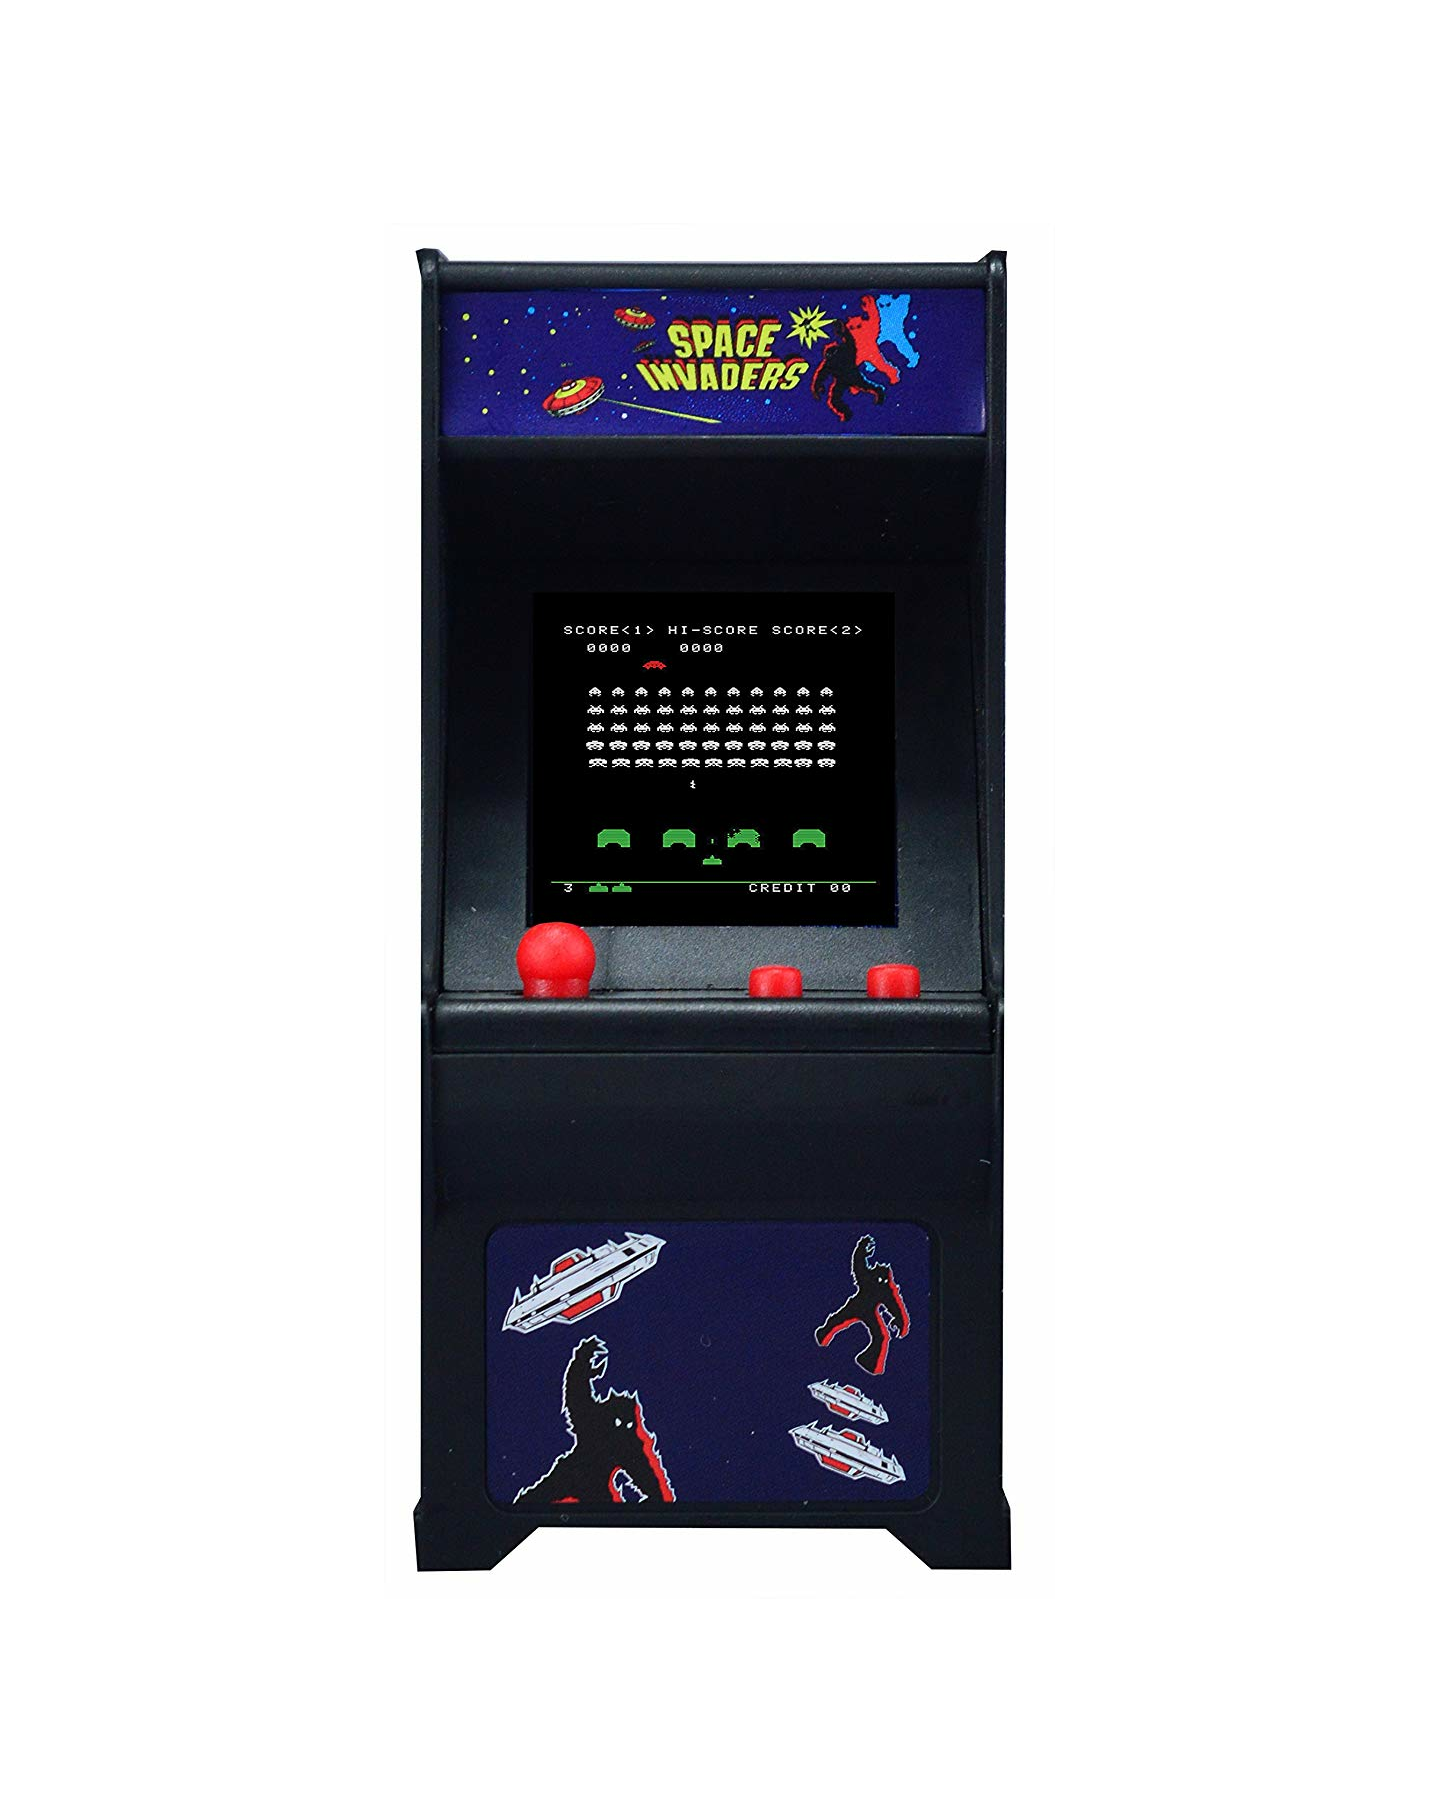 Tiny Arcade - Space Invaders